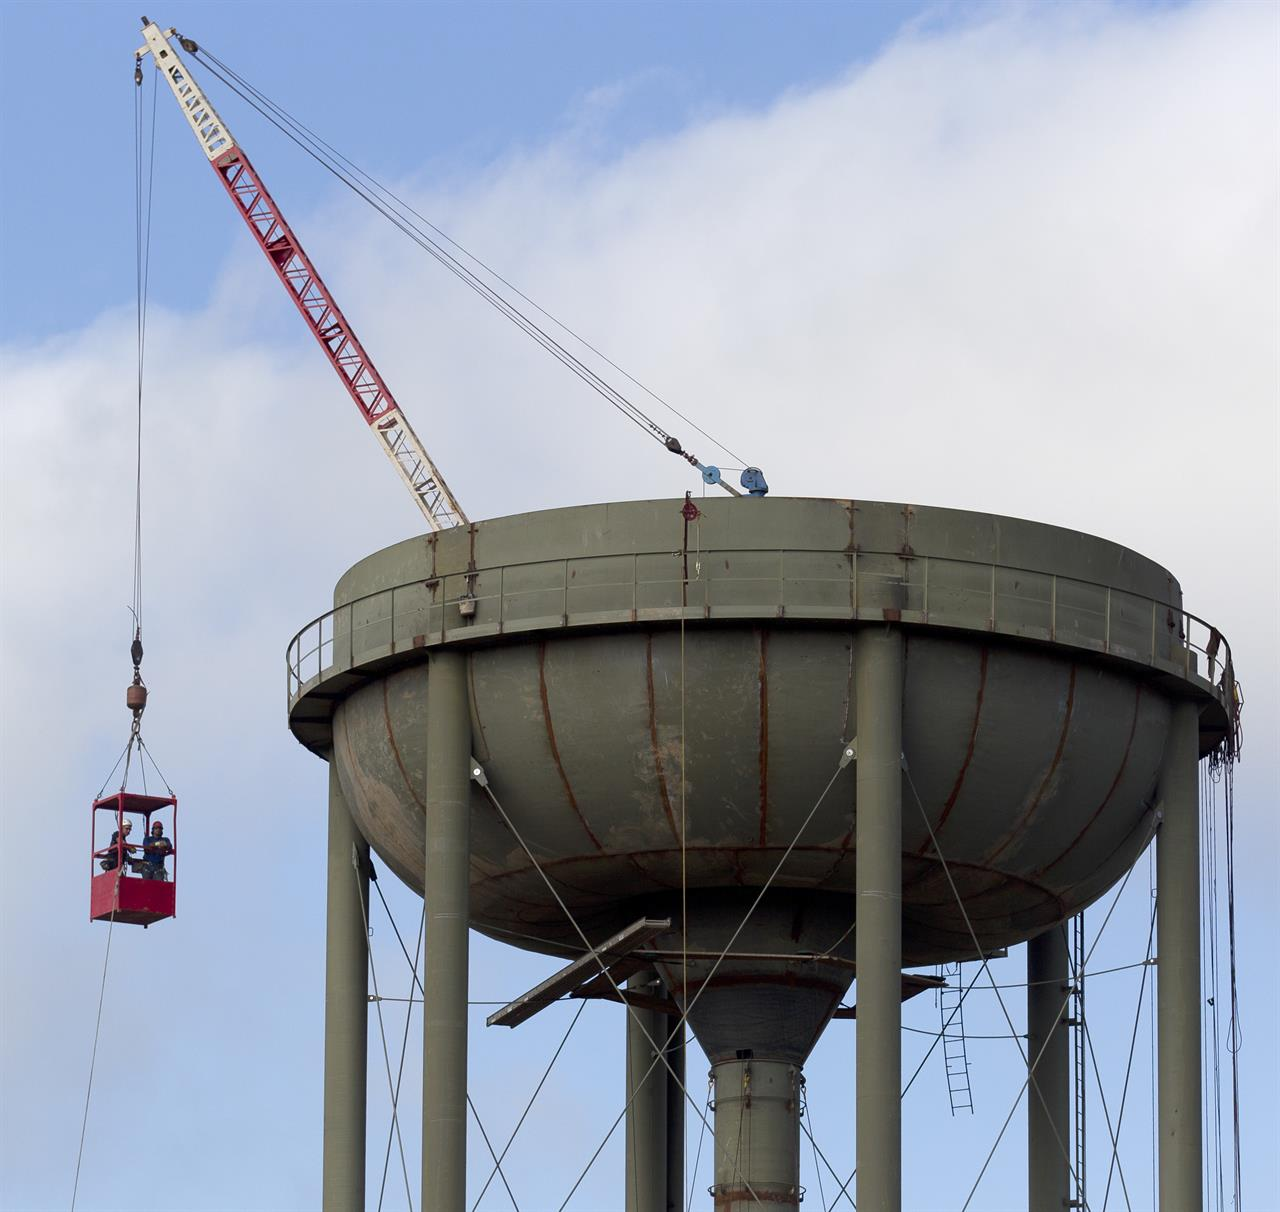 1 Killed In Accident On Texas Water Tower ...